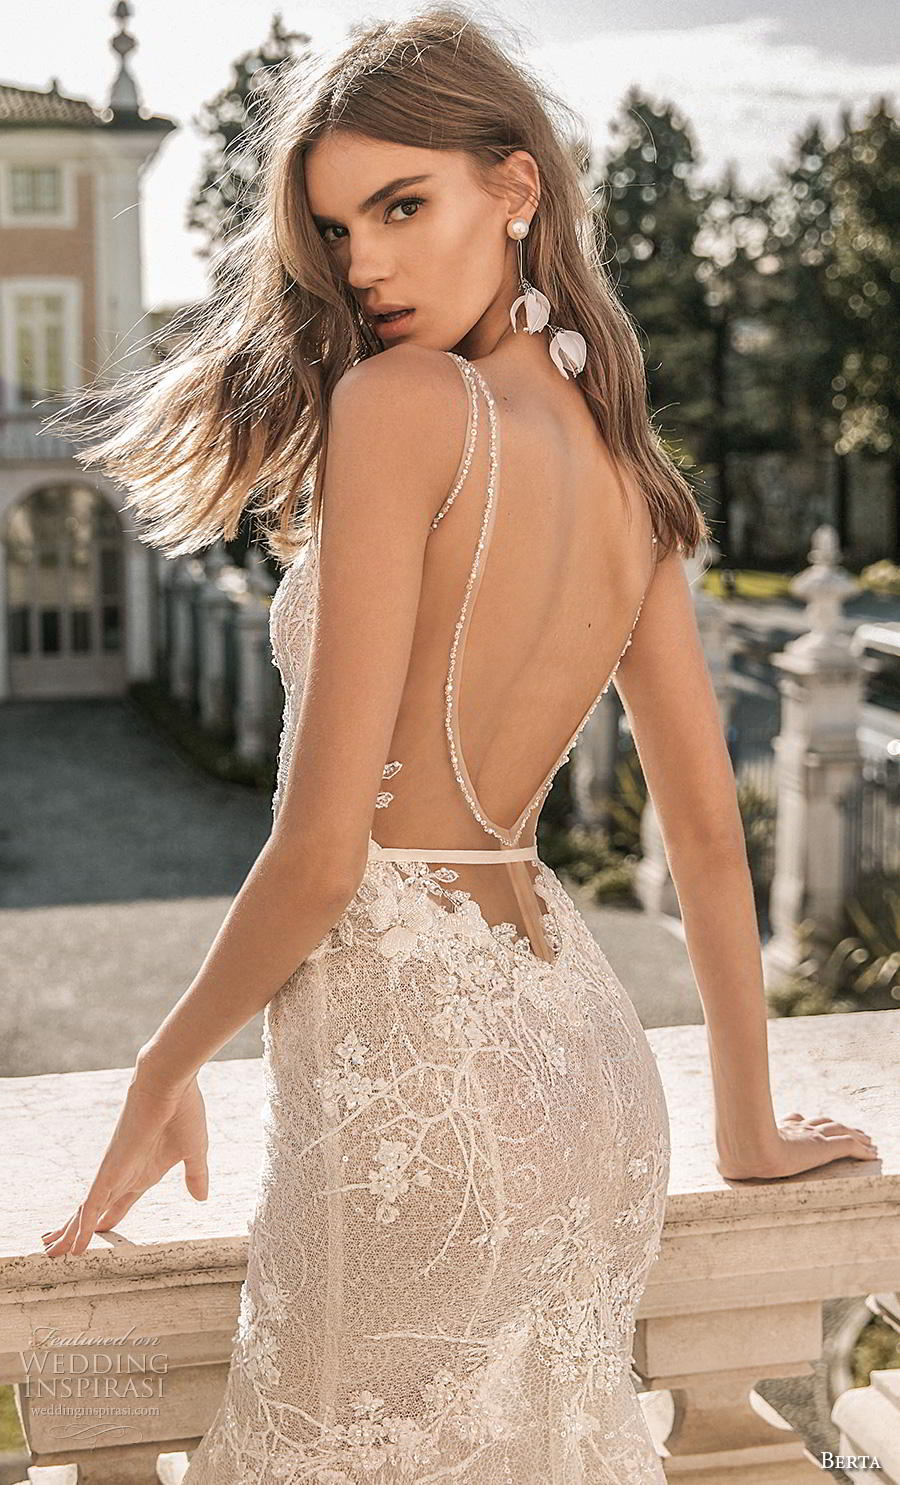 berta 2019 privee bridal thin strap sweetheart neckline heavily embellished bodice bustier sexy romantic mermaid wedding dress low open back backless chapel train (2) zbv